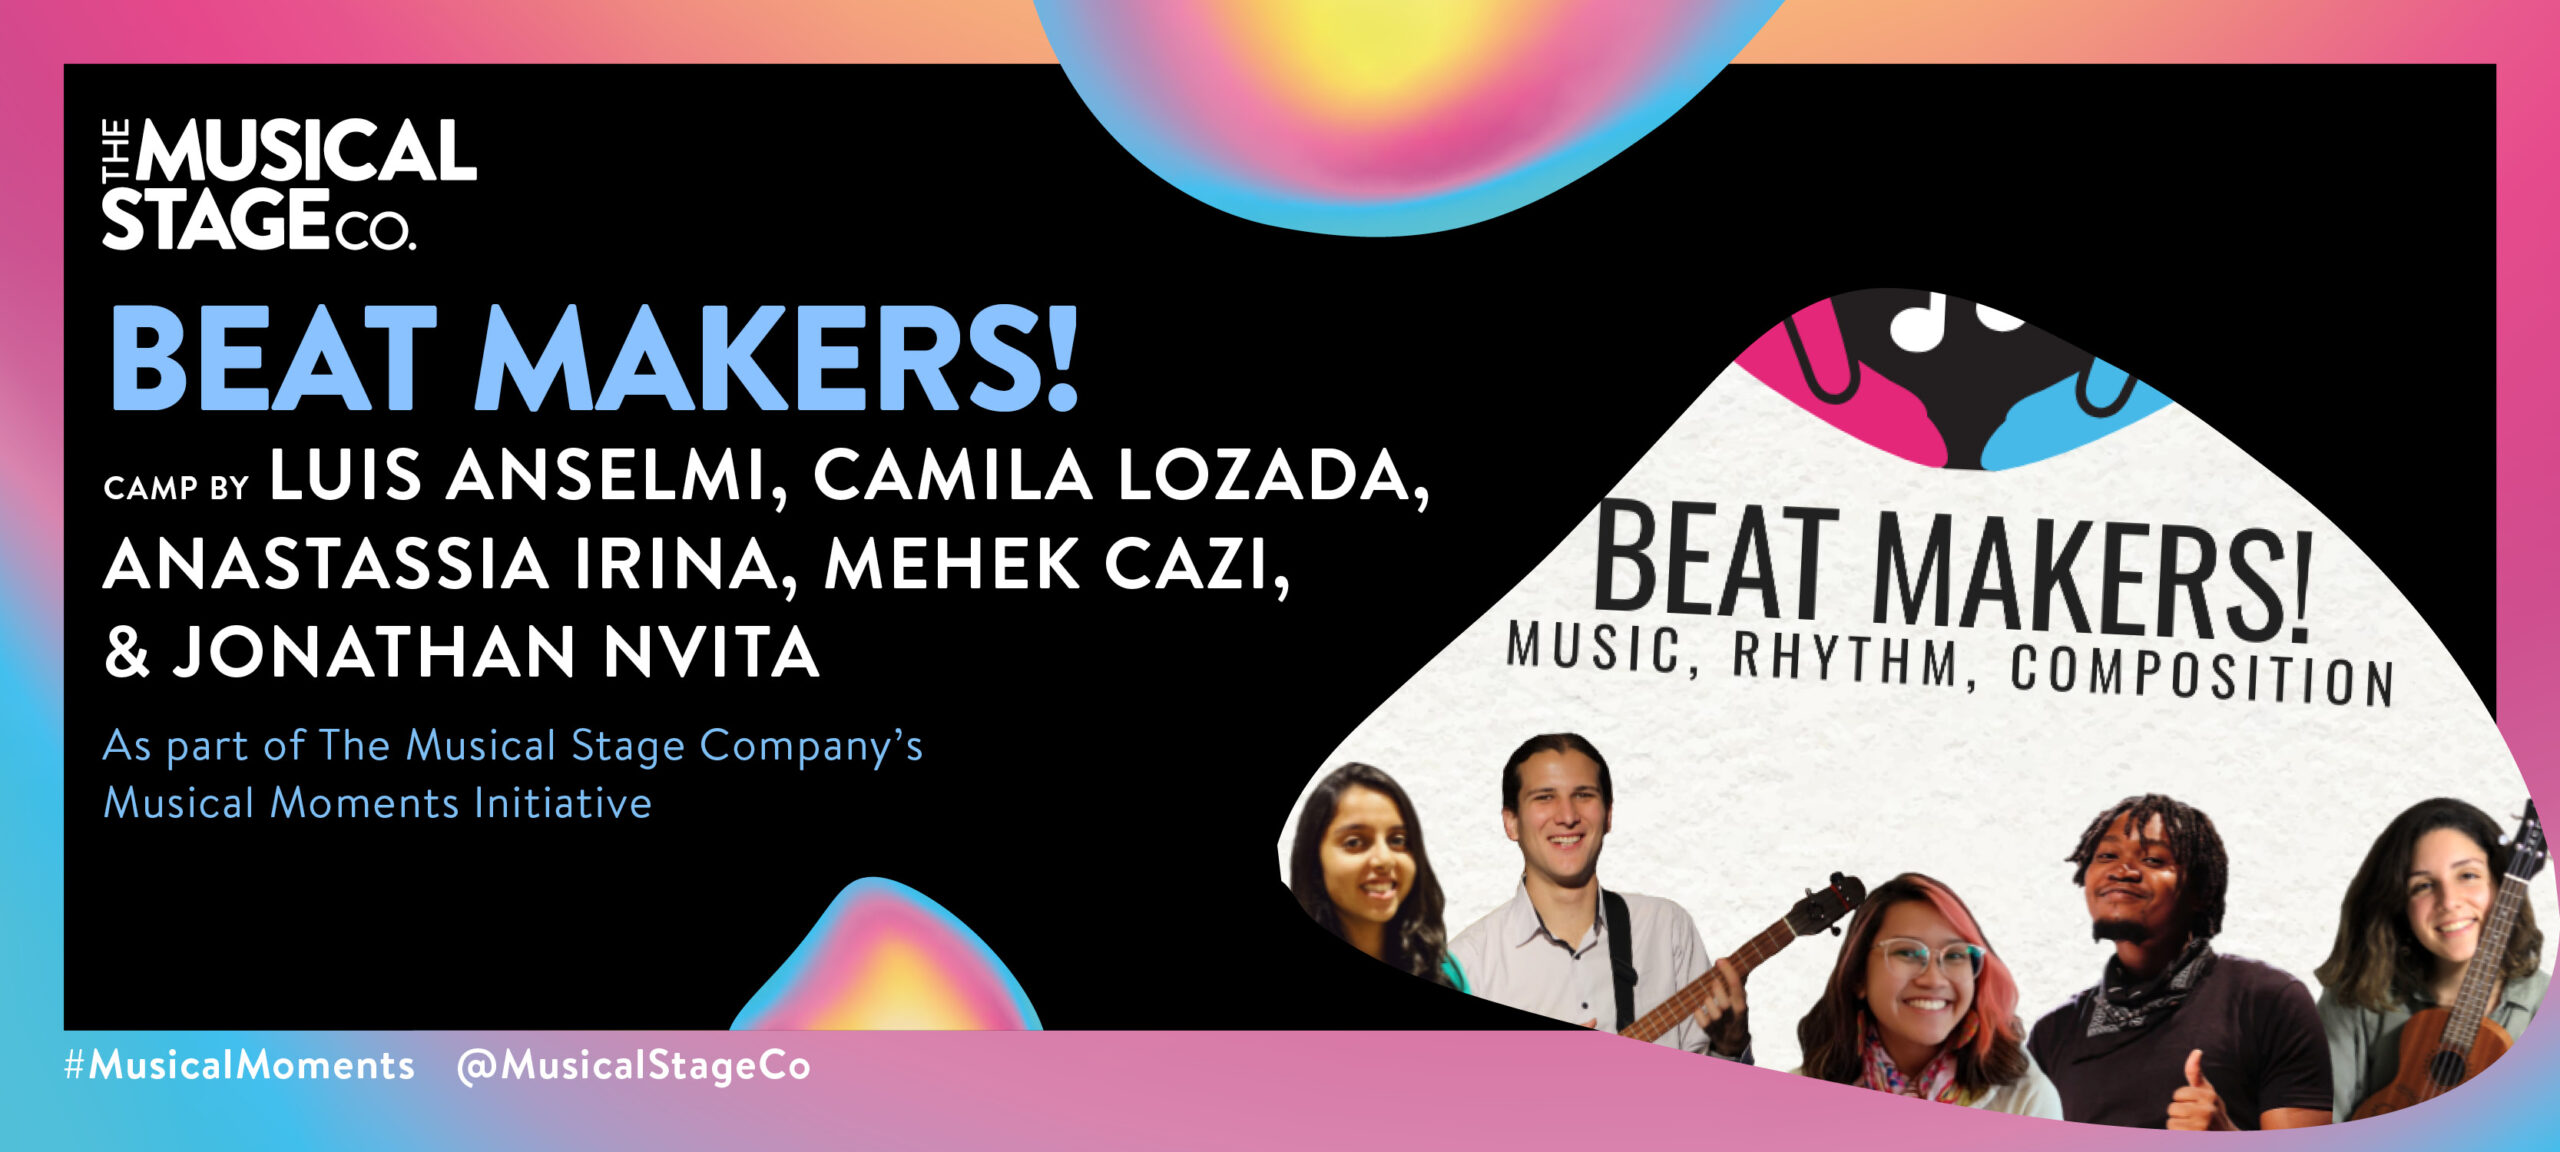 """Graphic of a black background and a gradient border of blue, pink and yellow. In front of the background are assorted blobs with the same gradient, with bold blue text reading, """"BEAT MAKERS!"""". Under that, smaller WHITE text reads, """"Camp by LUIS ANSELMI, MEHEL CAZI, CAMILA LOZADA, ANASTASSIA IRINA, & JONATHAN NVITA / As part of The Musical Stage Company's Musical Moments Initiative."""" A featured blob shows On top, there are two hands, one fuchsia(on the left) and one turquoise(on the right). They are holding white musical notes, on a black background. Below, there is a collage of all the team members smiling, on a white background. Starting from the left is Mehek, a filmmaker wearing a traditional Indian turquoise dress. Next is Luis, holding a Venezuelan cuatro (musical instrument) and wearing a white shirt. Next to him is Anastassia, a creative writer, wearing transparent glasses and a colourful scarf on a white shirt. Then is Jonathan, a multi-instrumentalist wearing a black shirt and scarf, giving a thumbs up. Finally there is Camila, a singer holding a Ukulele and wearing a light green shirt."""